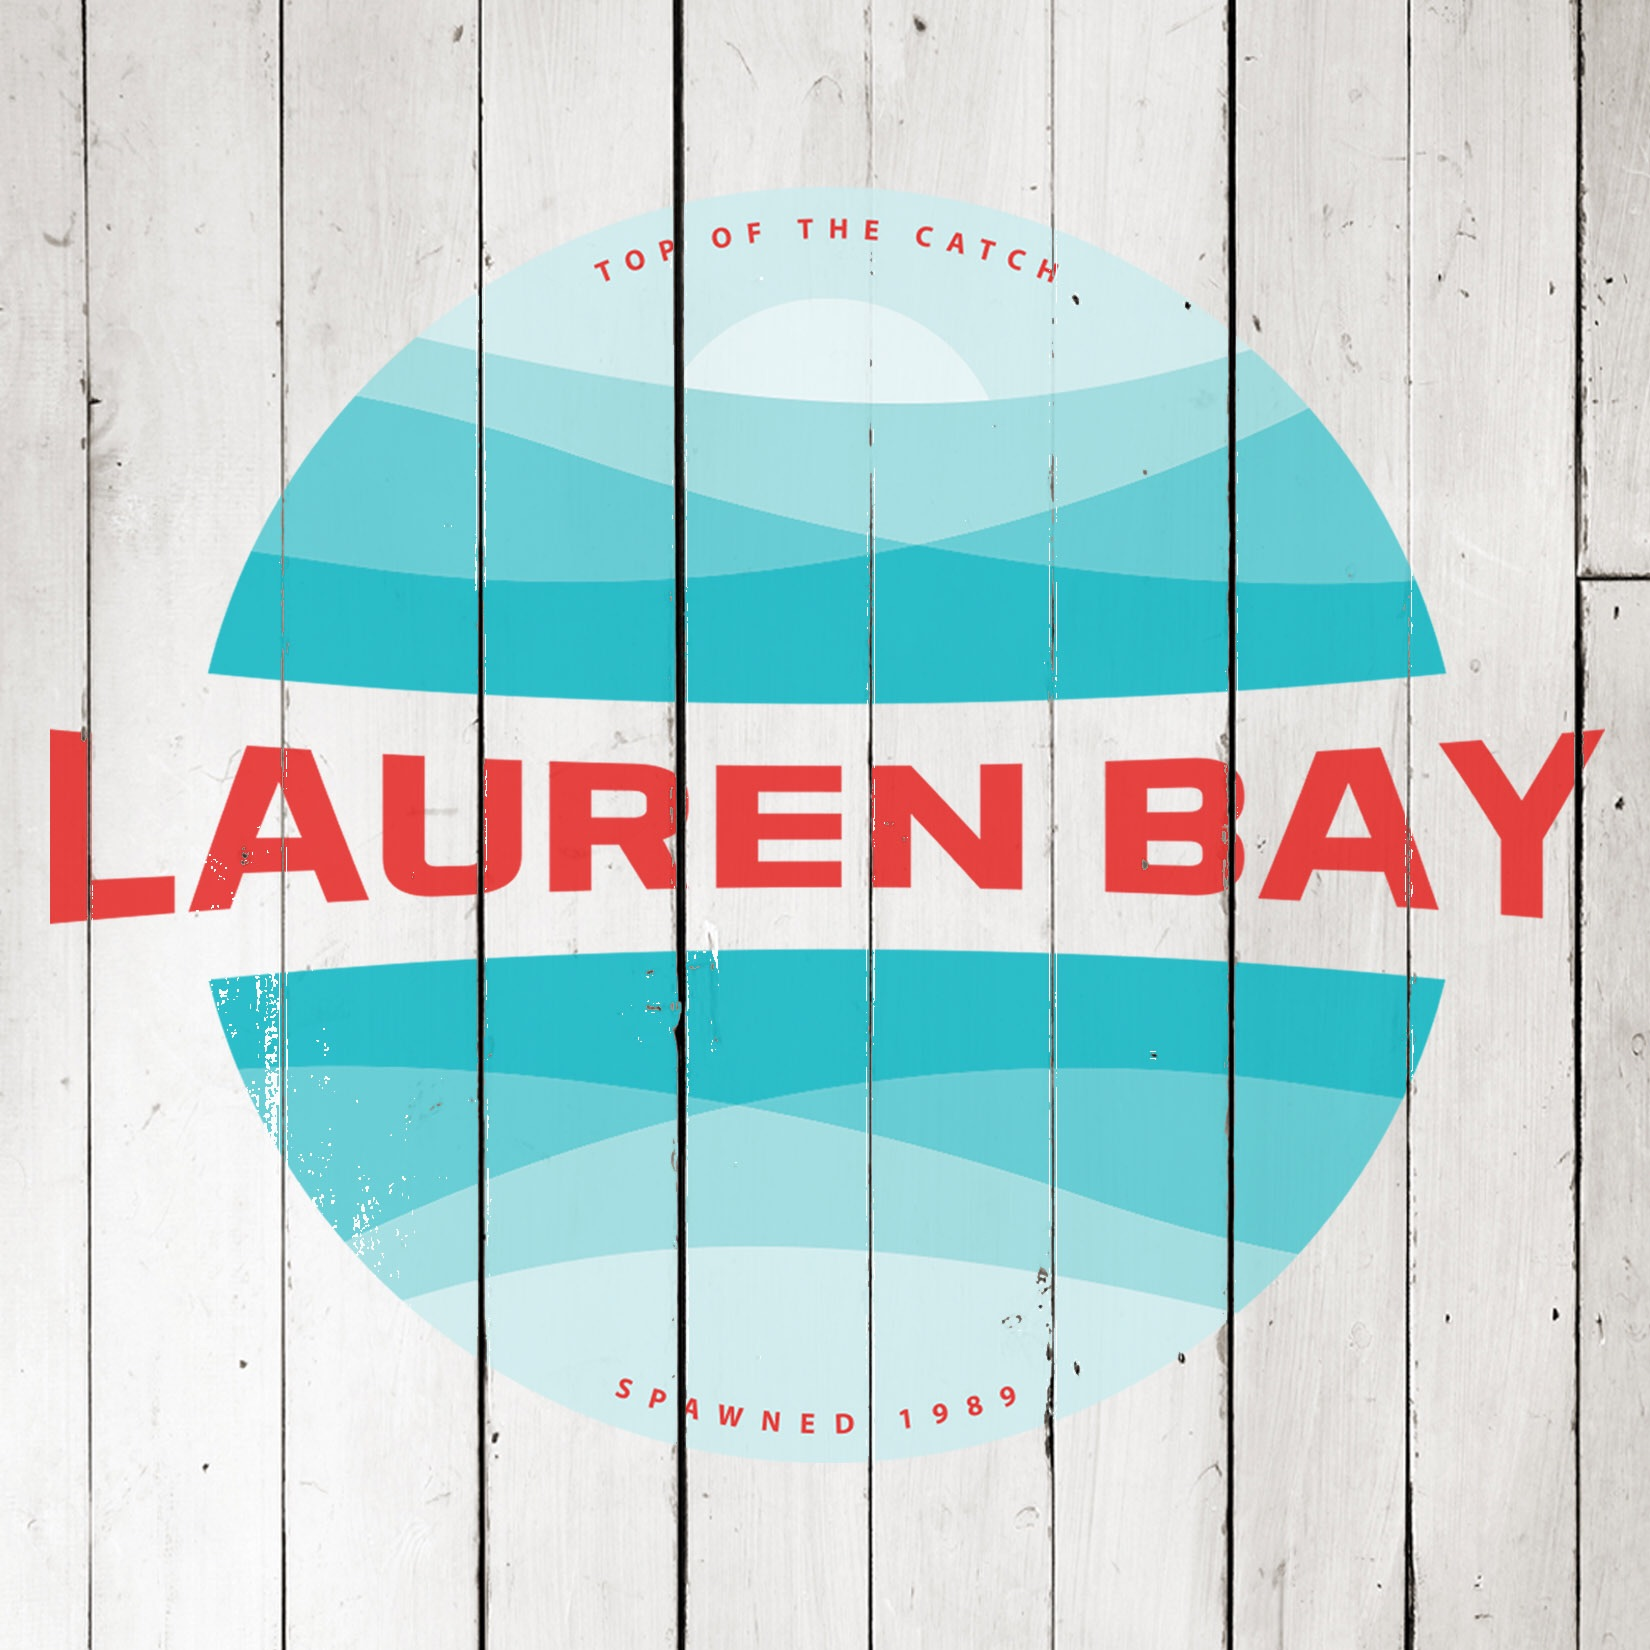 Lauren Bay is a brand from Samuels Seafood Co.